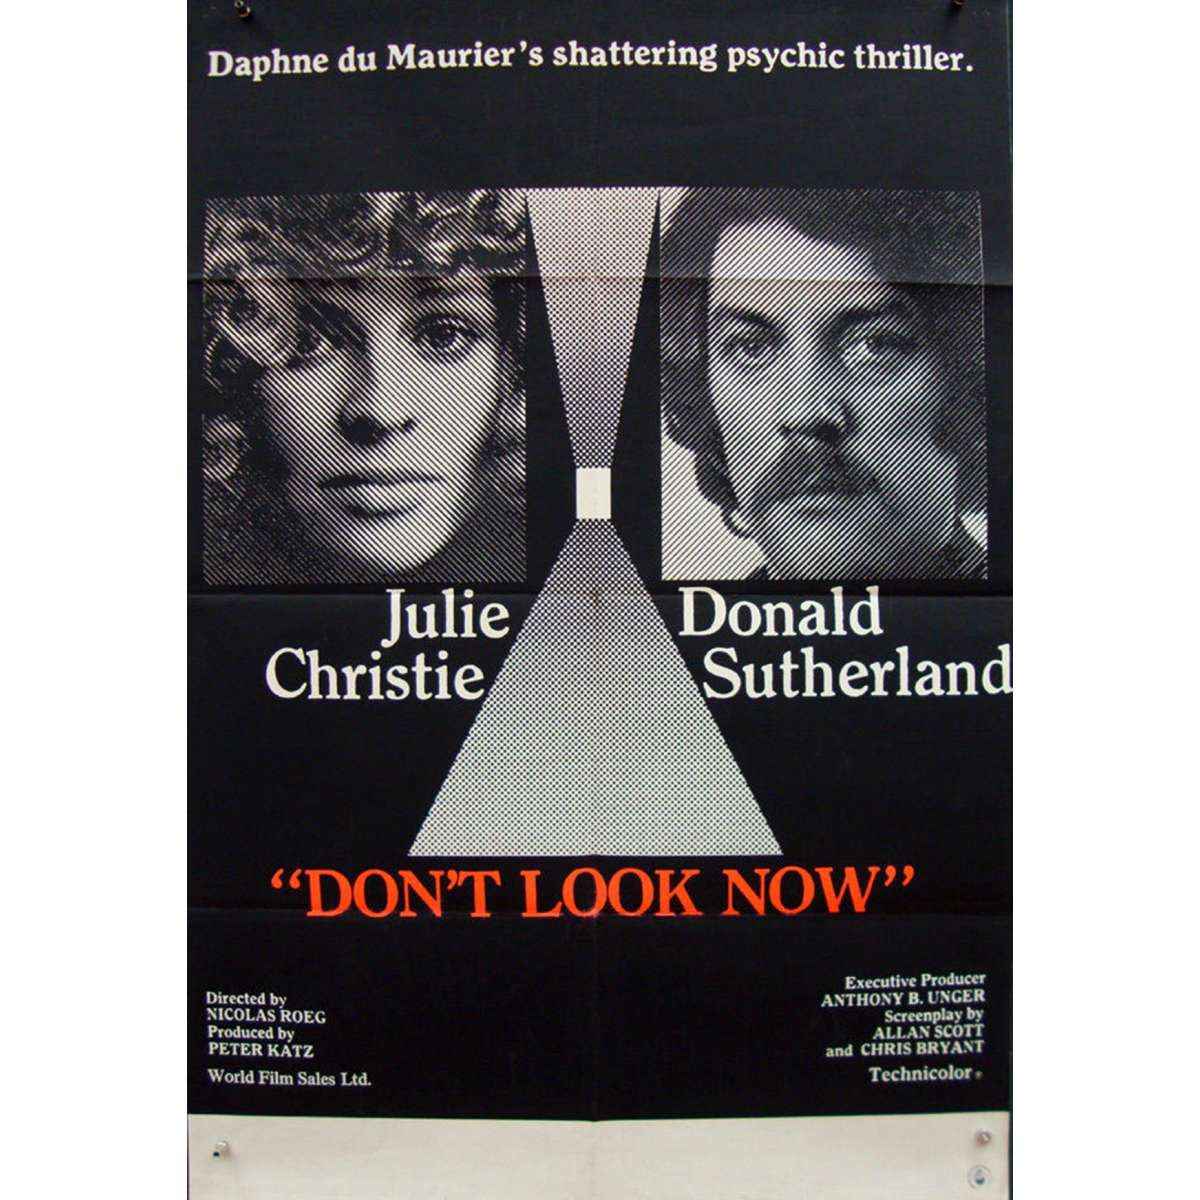 https://www.mauvais-genres.com/15971-thickbox_default/don-t-look-now-movie-poster-29x40-in-british-1973-nicholas-roeg-donald-sutherland.jpg,Medical Conditions